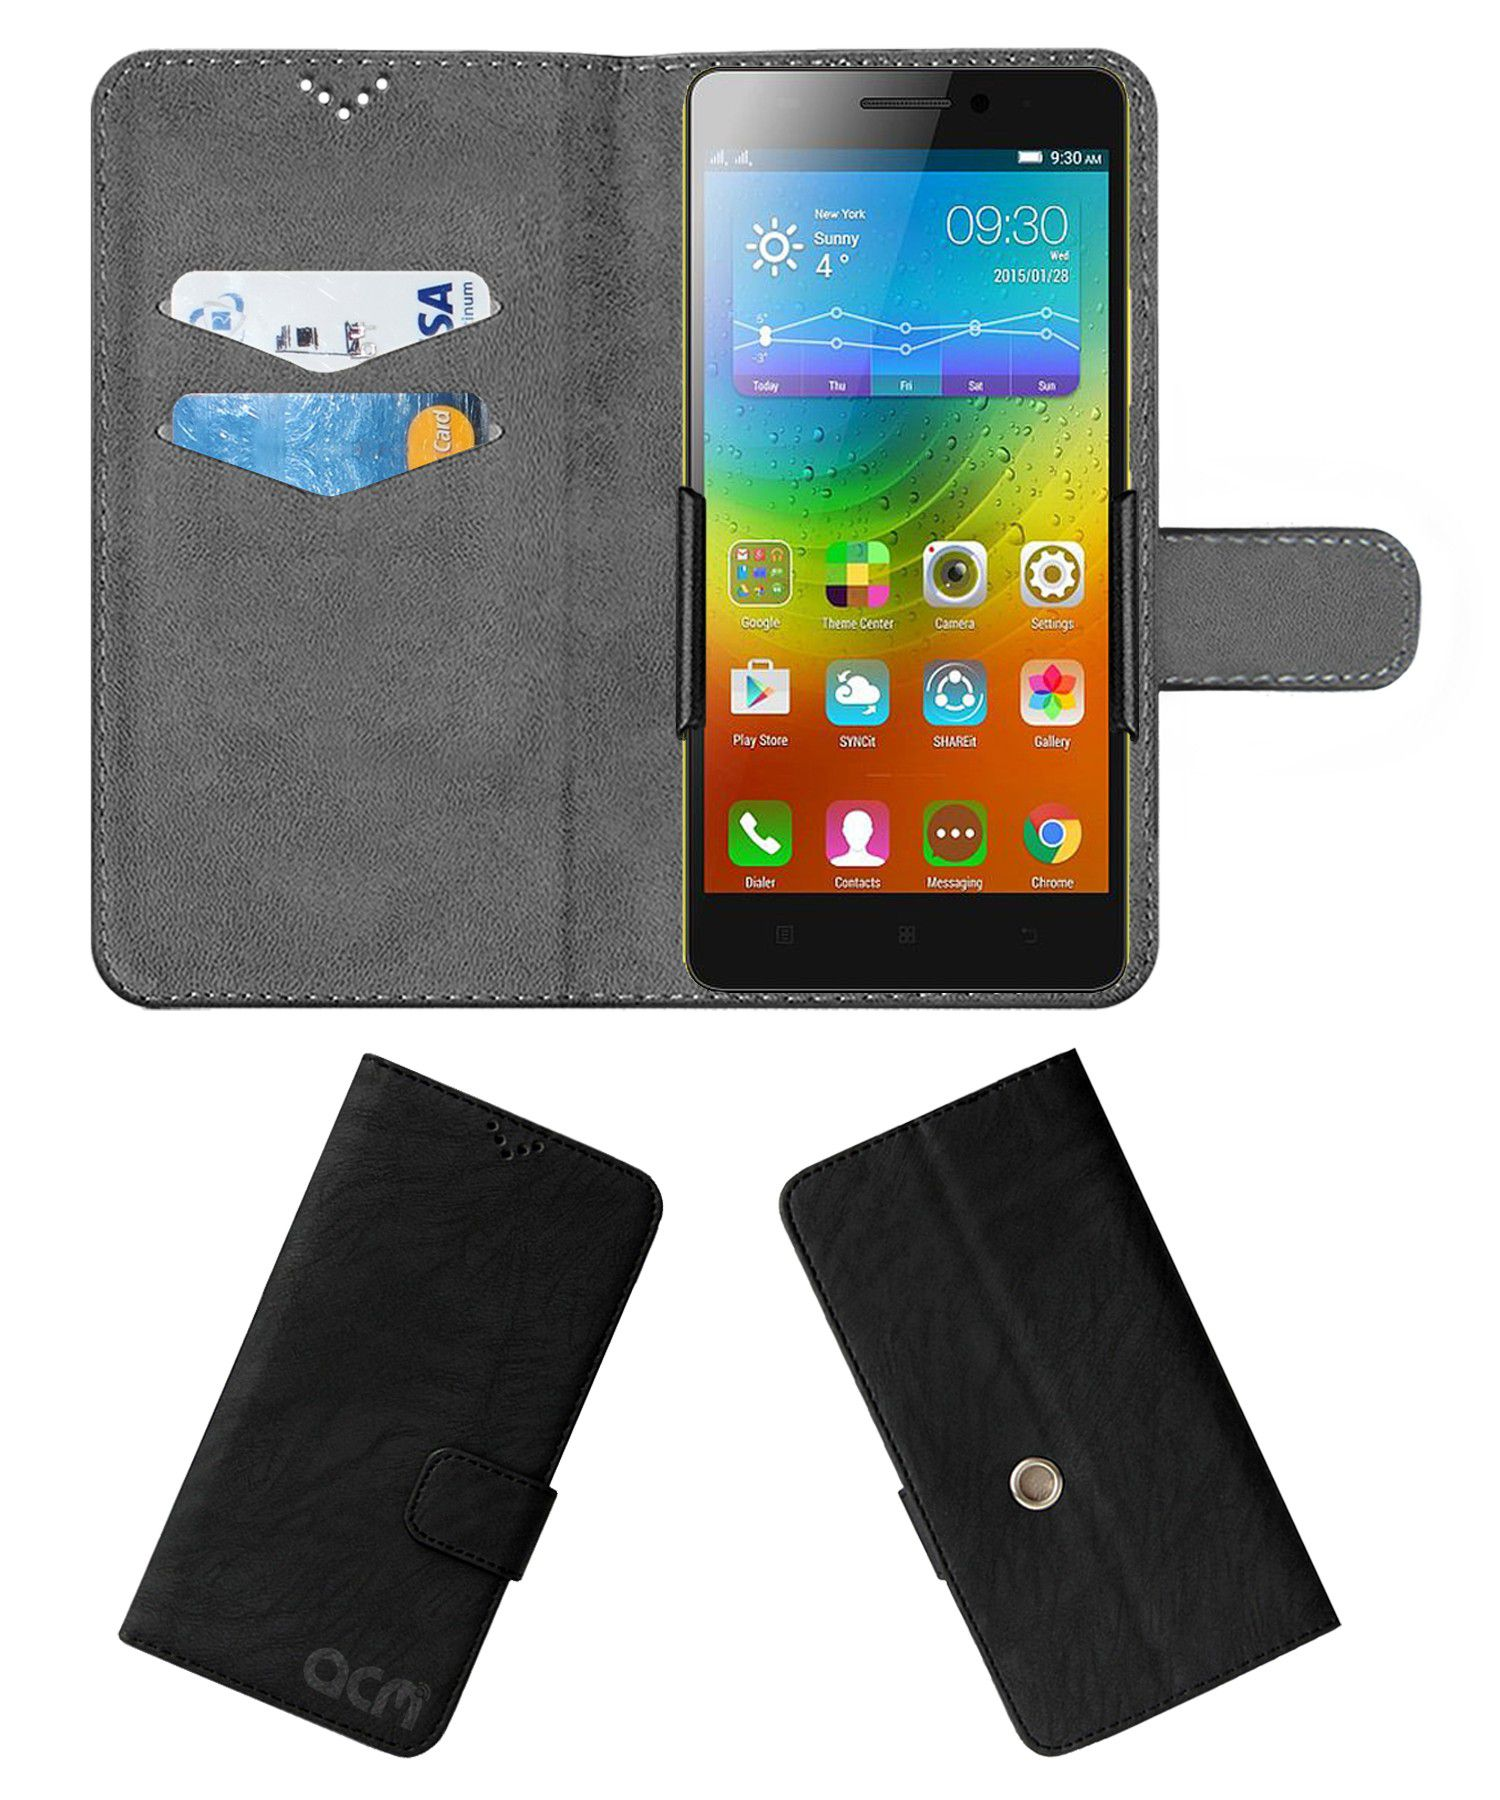 Lenovo K3 Note Music Flip Cover by ACM - Black Clip holder to hold your mobile securely